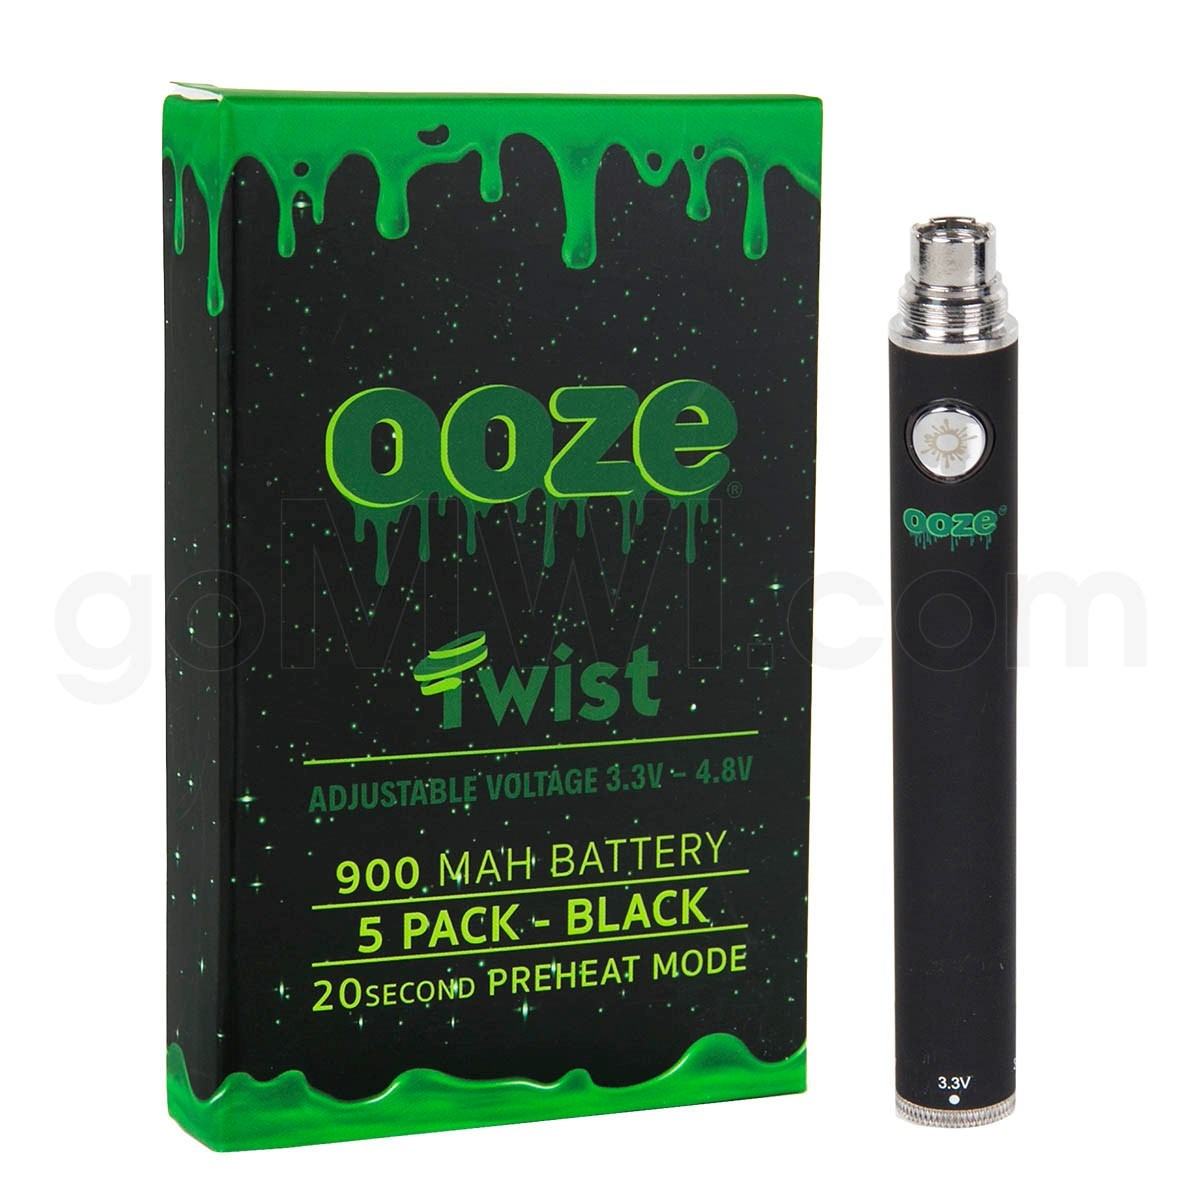 OOZE VAPORIZER BATTERIES AND SILICONE PIPES